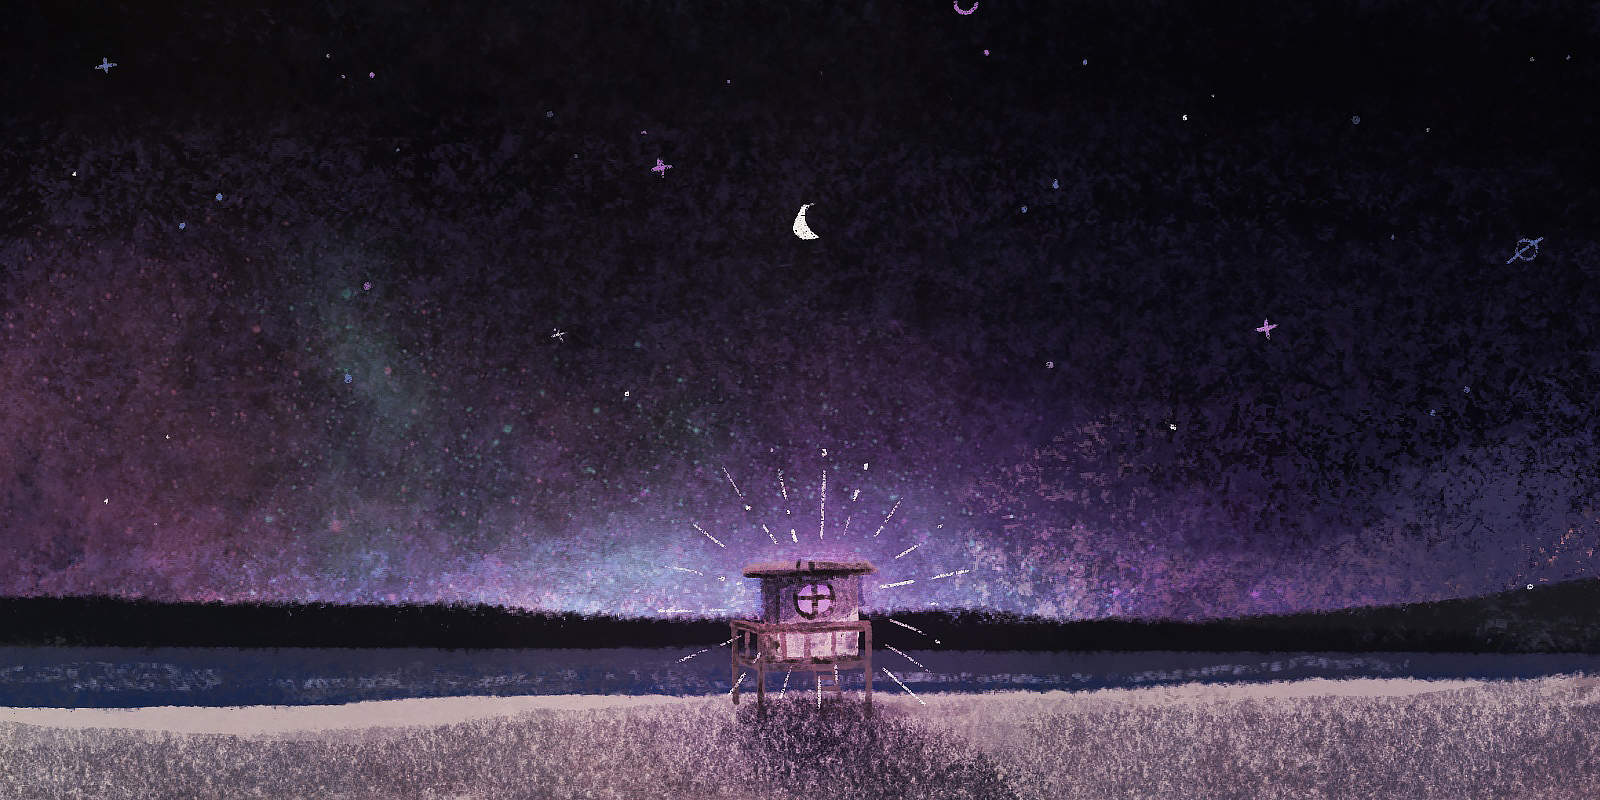 A lifeguard tower glows with a purple hue on an empty beach at night